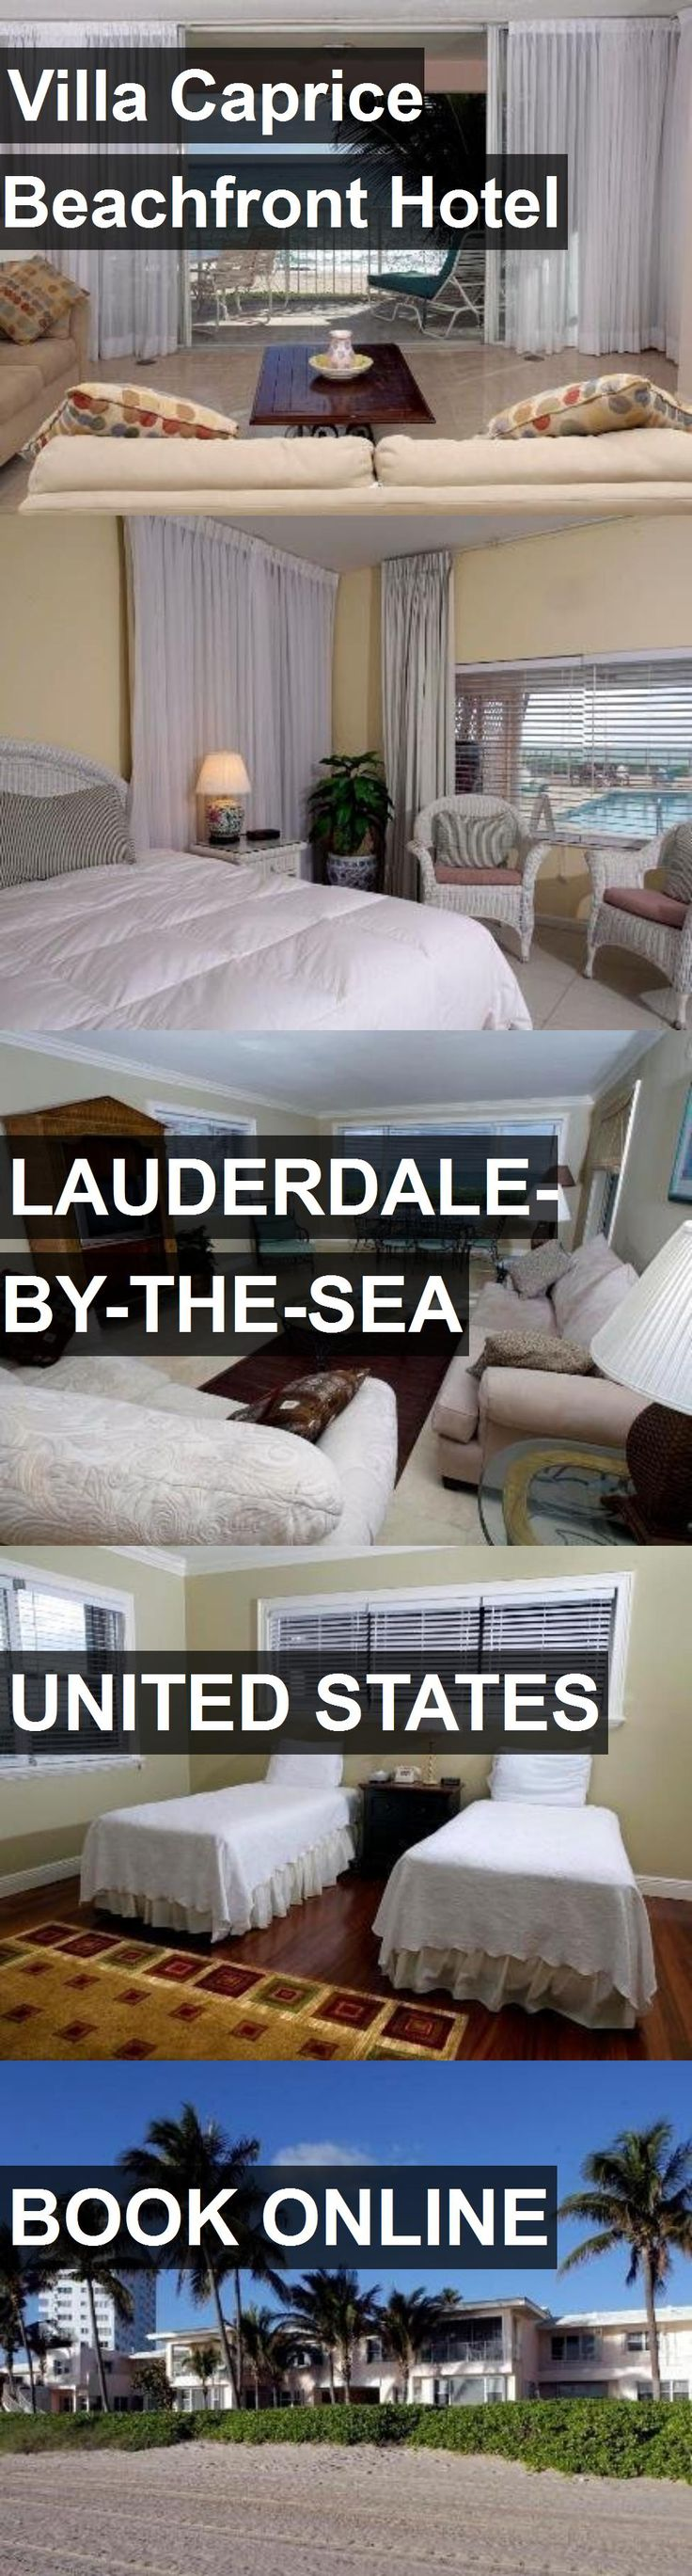 Hotel Villa Caprice Beachfront Hotel in Lauderdale-By-The-Sea, United States. For more information, photos, reviews and best prices please follow the link. #UnitedStates #Lauderdale-By-The-Sea #VillaCapriceBeachfrontHotel #hotel #travel #vacation